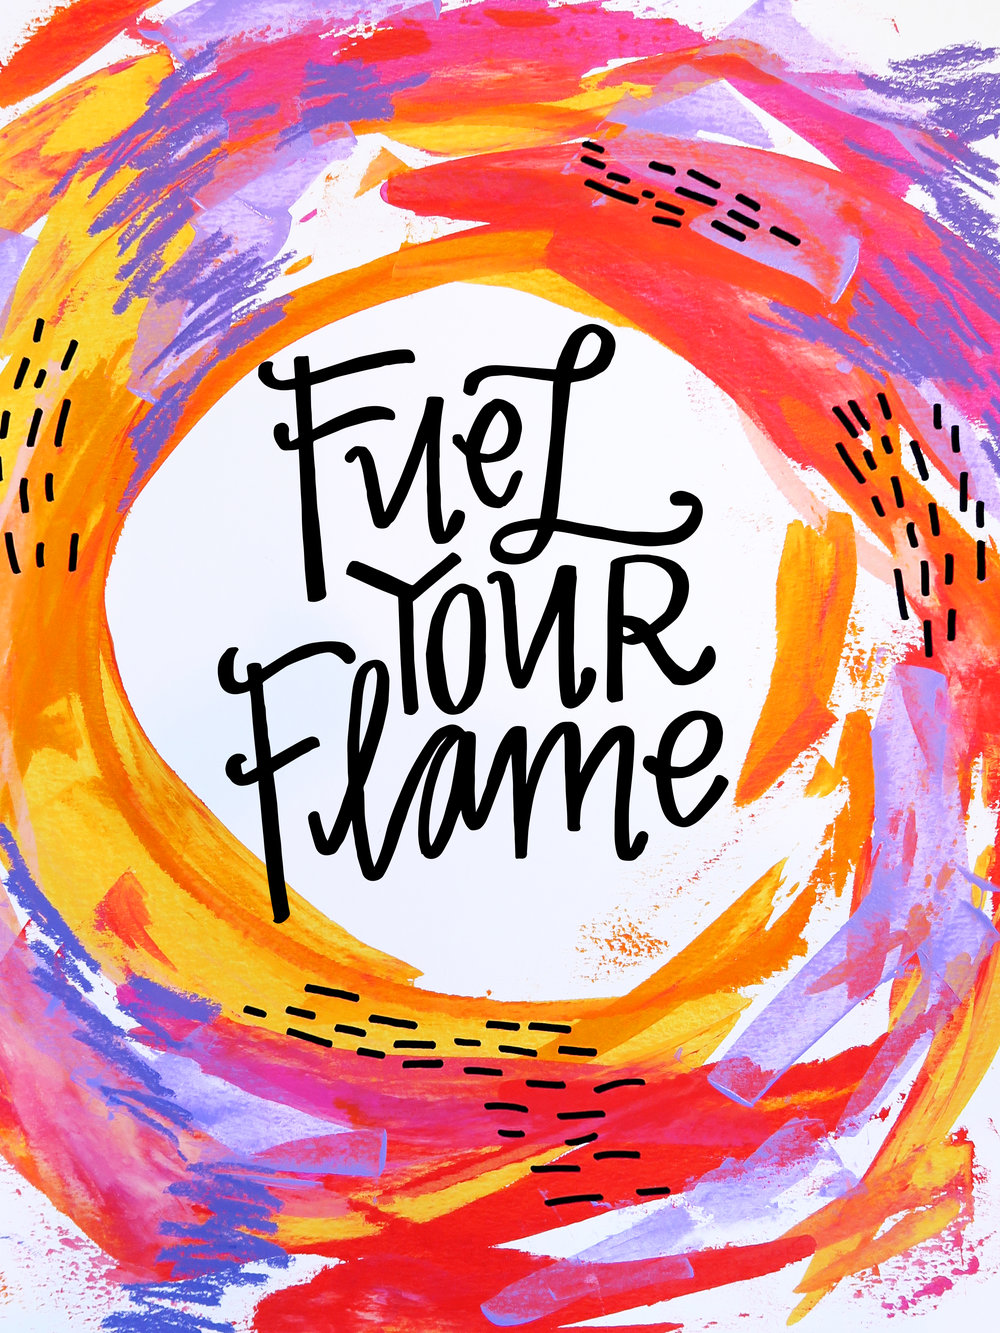 3/23/16: Flame